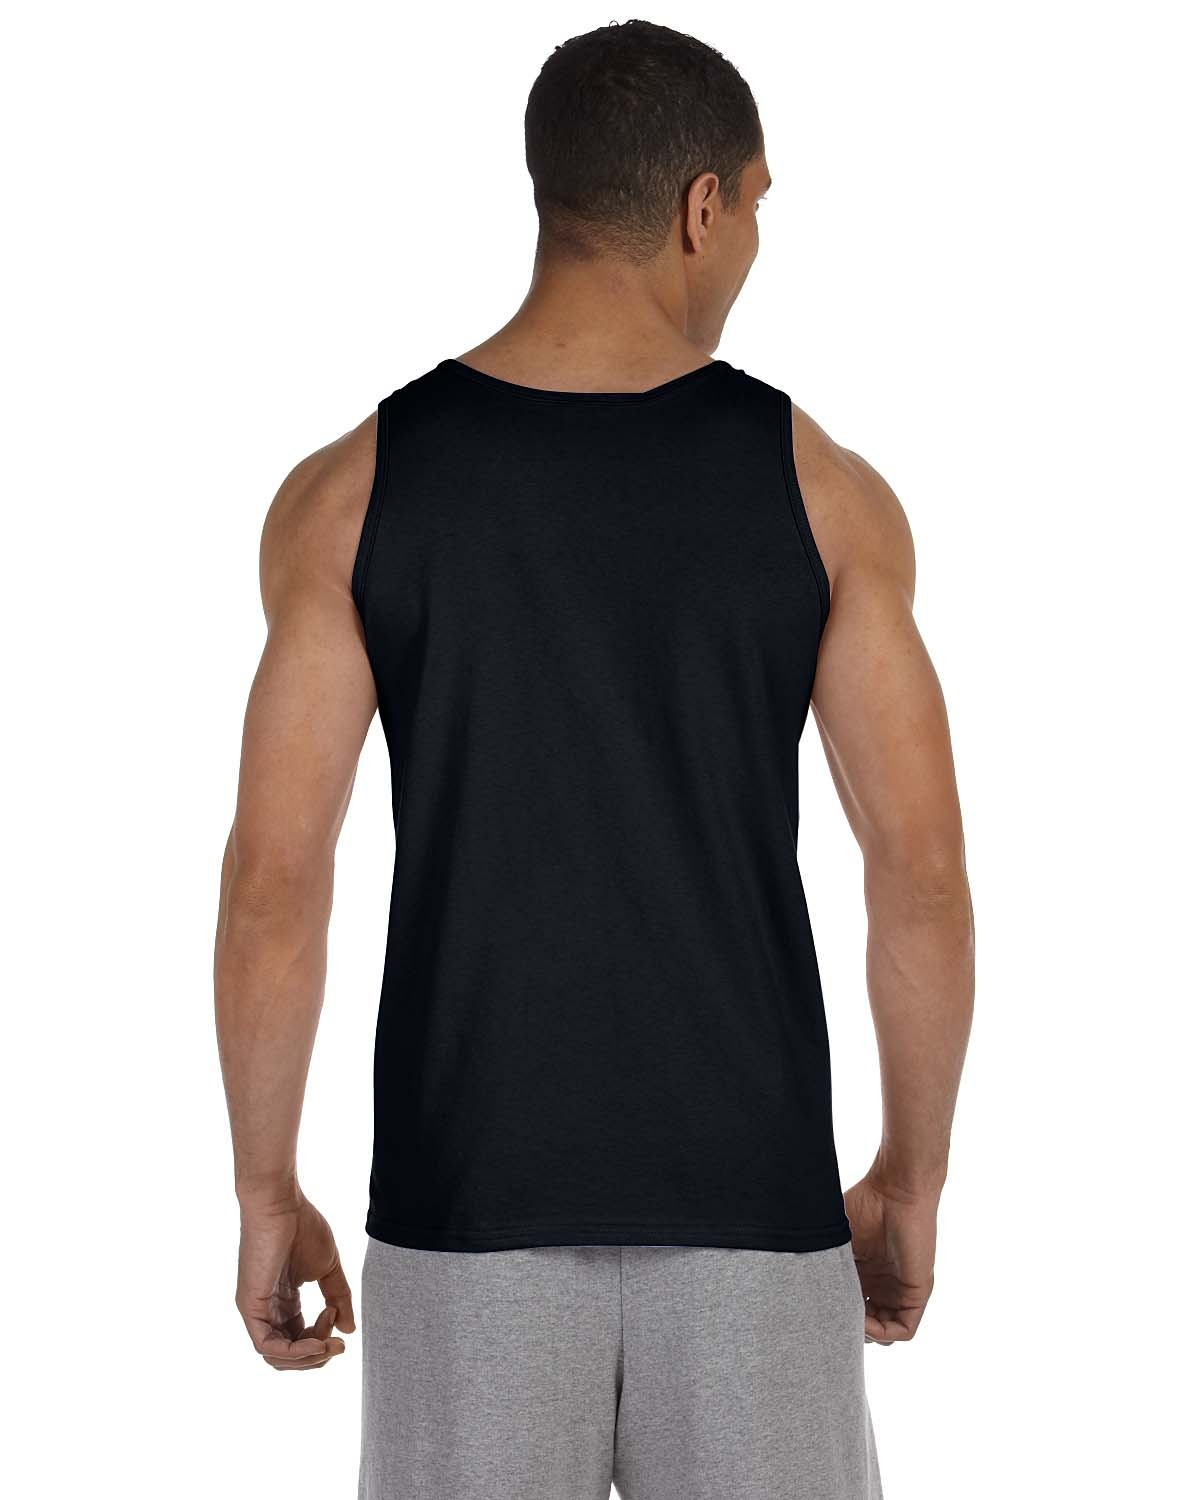 Find great deals on eBay for mens black tank top. Shop with confidence.